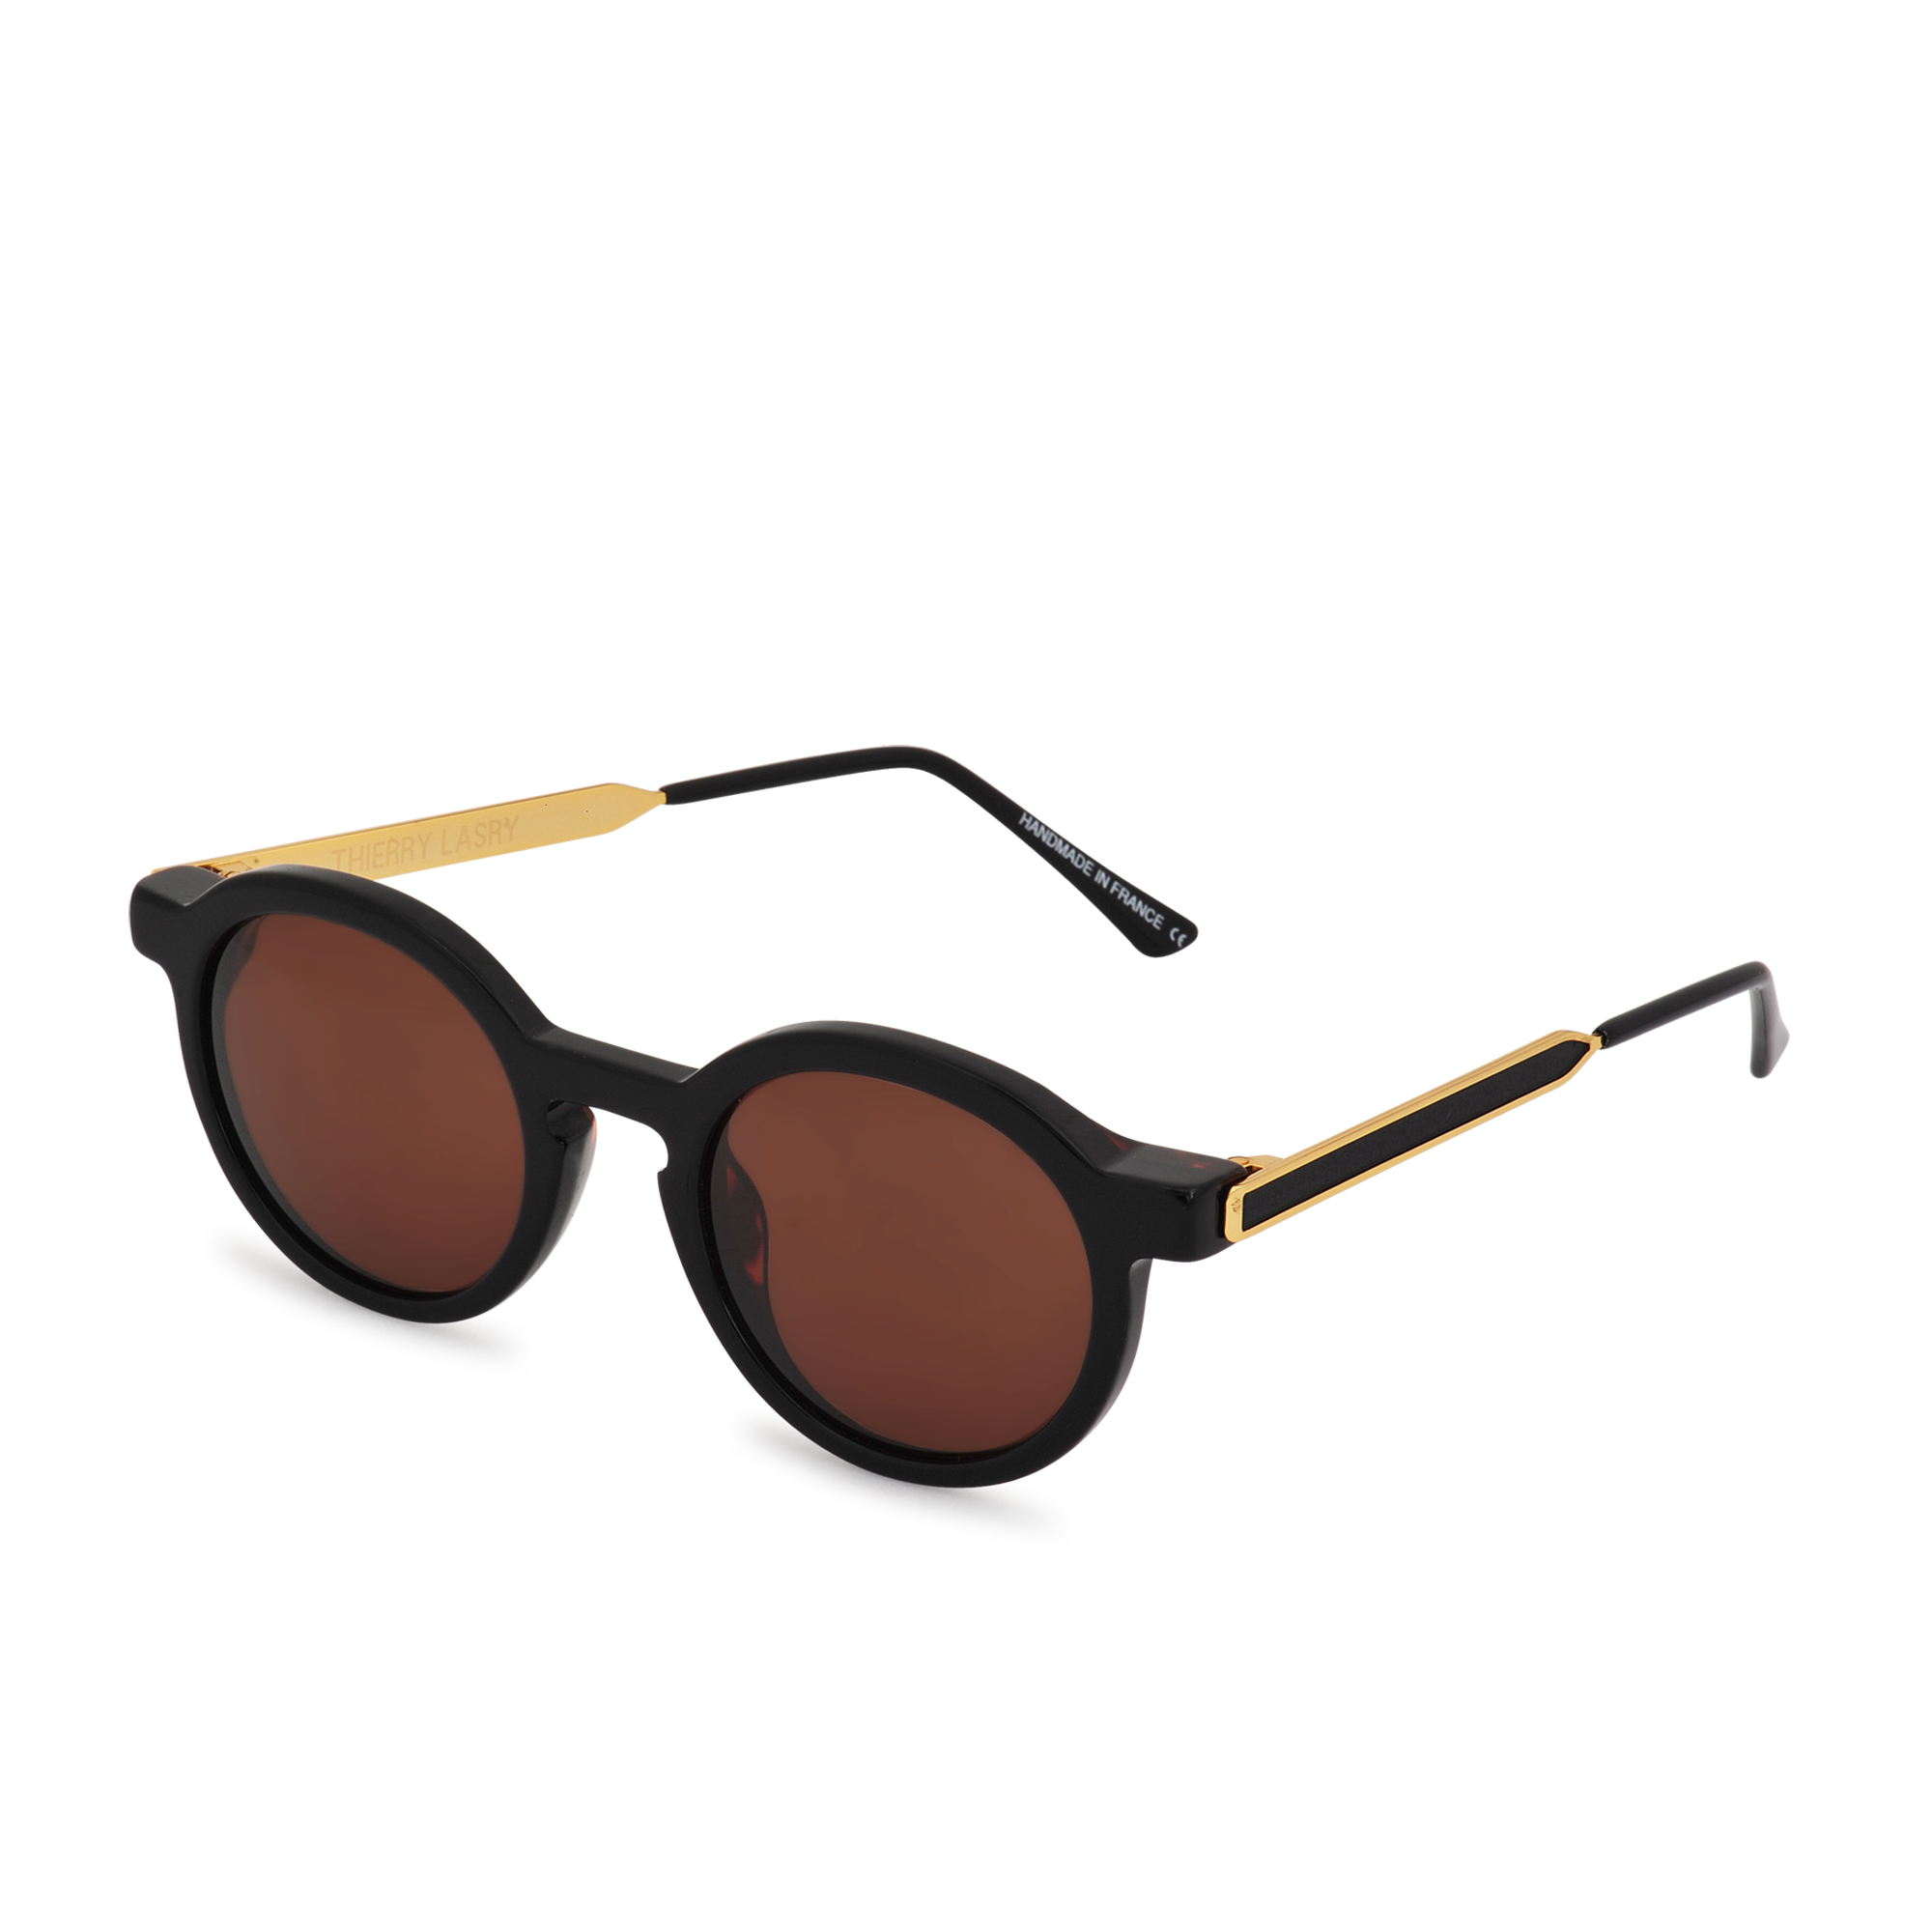 26842f585c Lyst - Thierry Lasry Sobriety 101 Sunglasses in Black